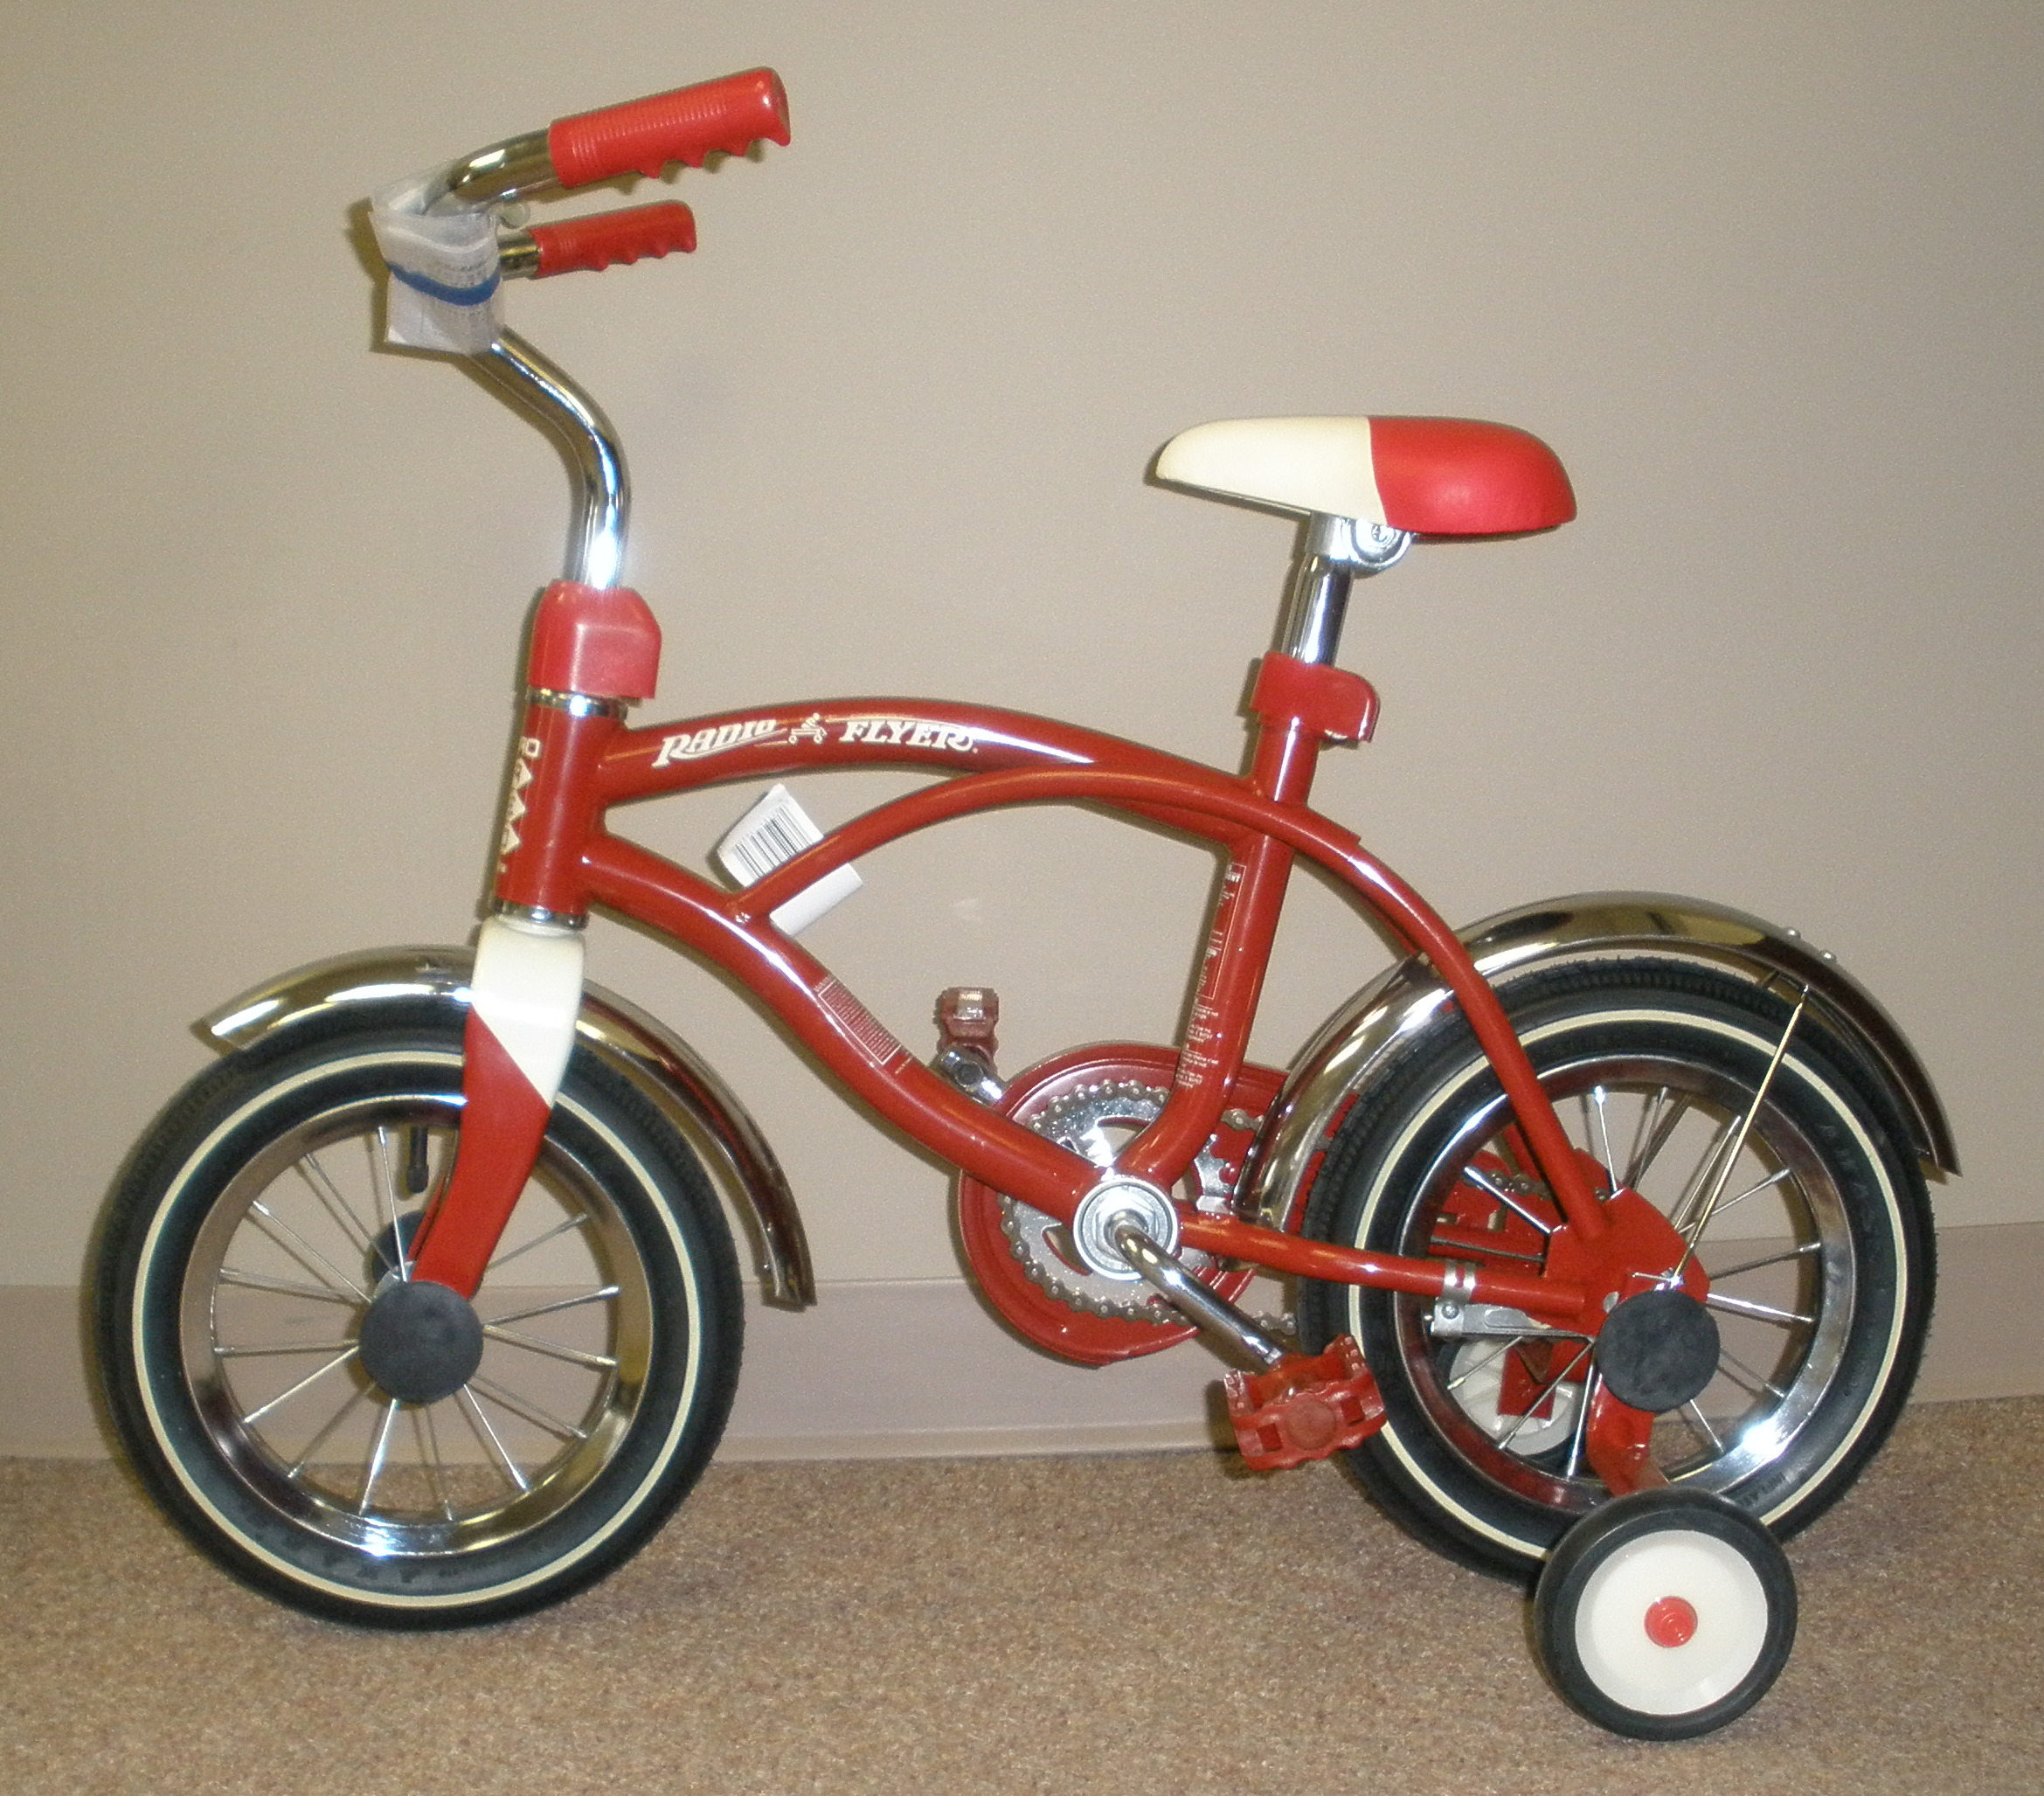 Fairbury Fire Radio Flyer Bicycle cropped